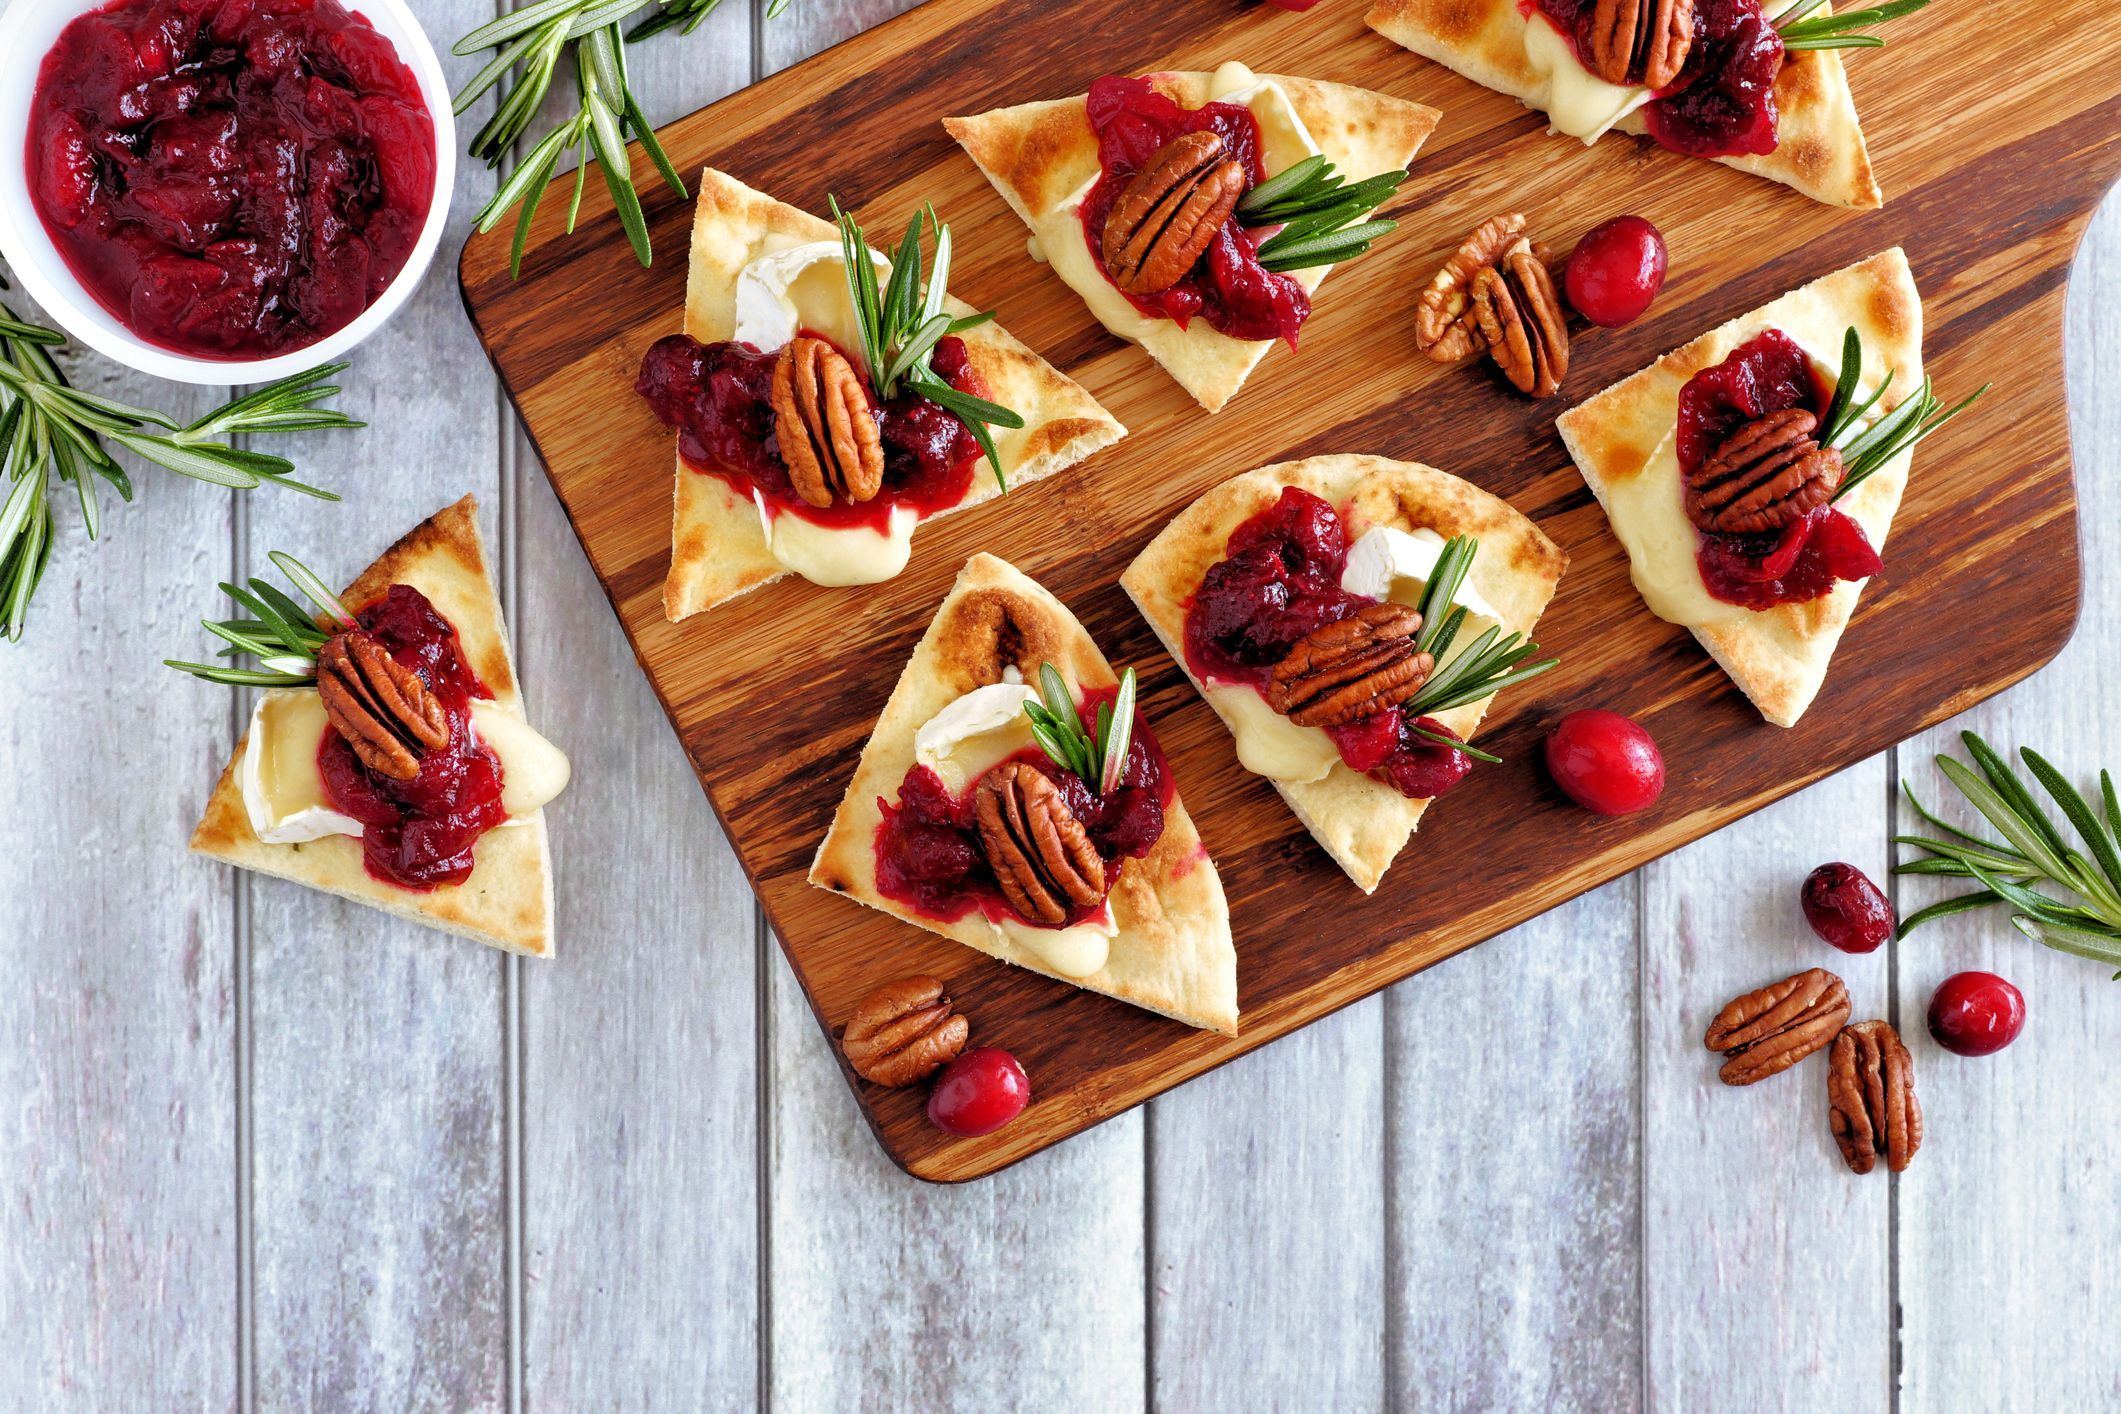 75 Easy Christmas Appetizer Ideas - Best Holiday Appetizer Recipes